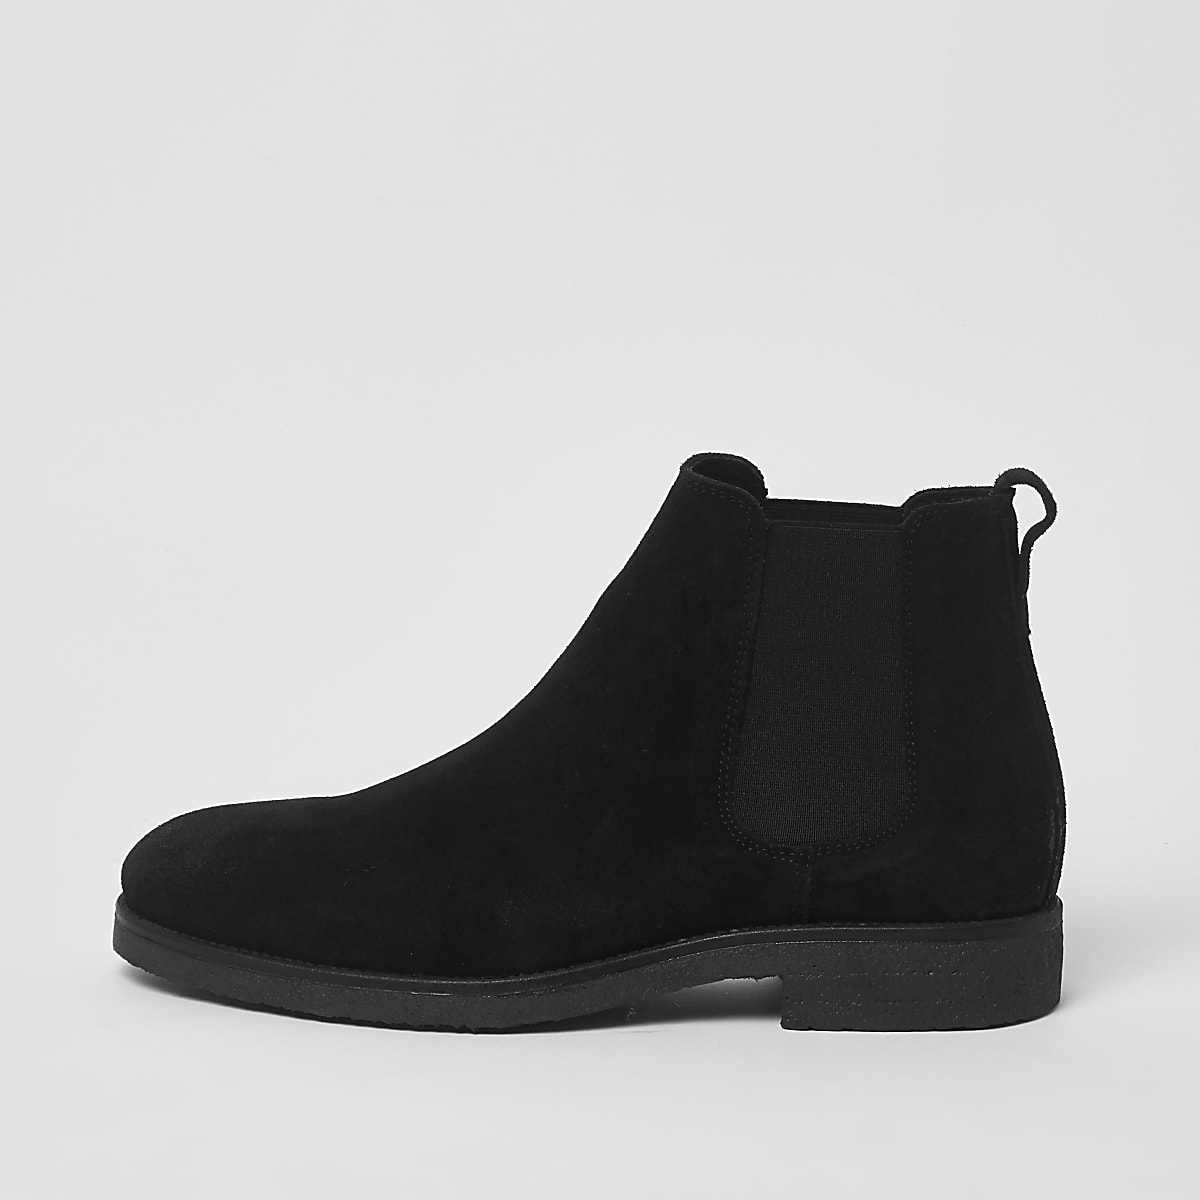 742163dd0ea Black wide fit suede chelsea boots - Boots - Shoes   Boots - men